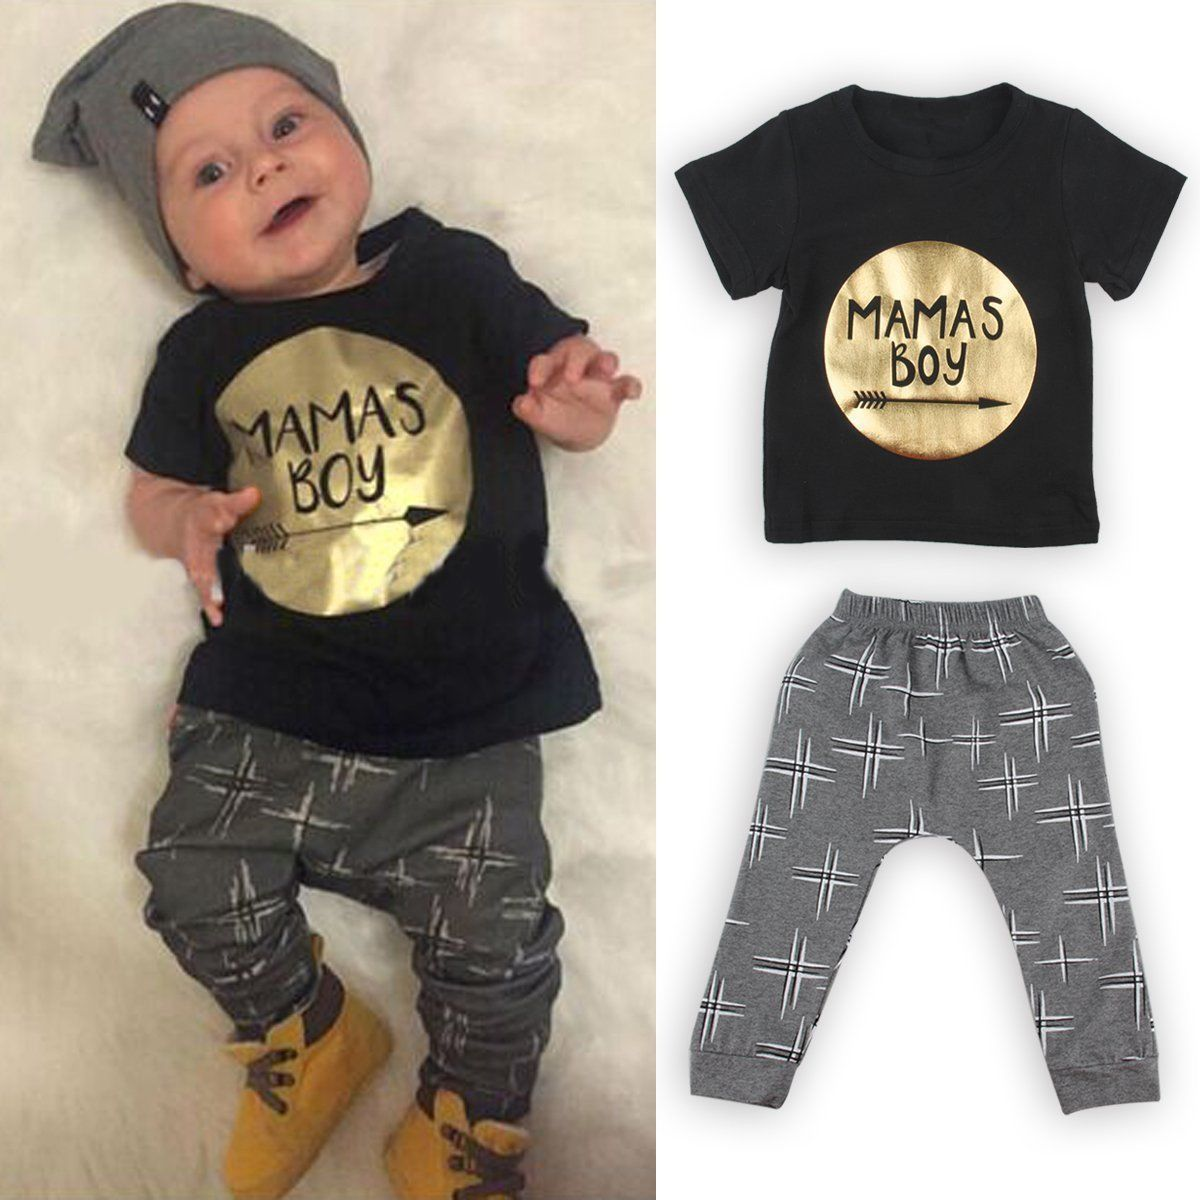 Look - Toddler cute boy outfits photo video